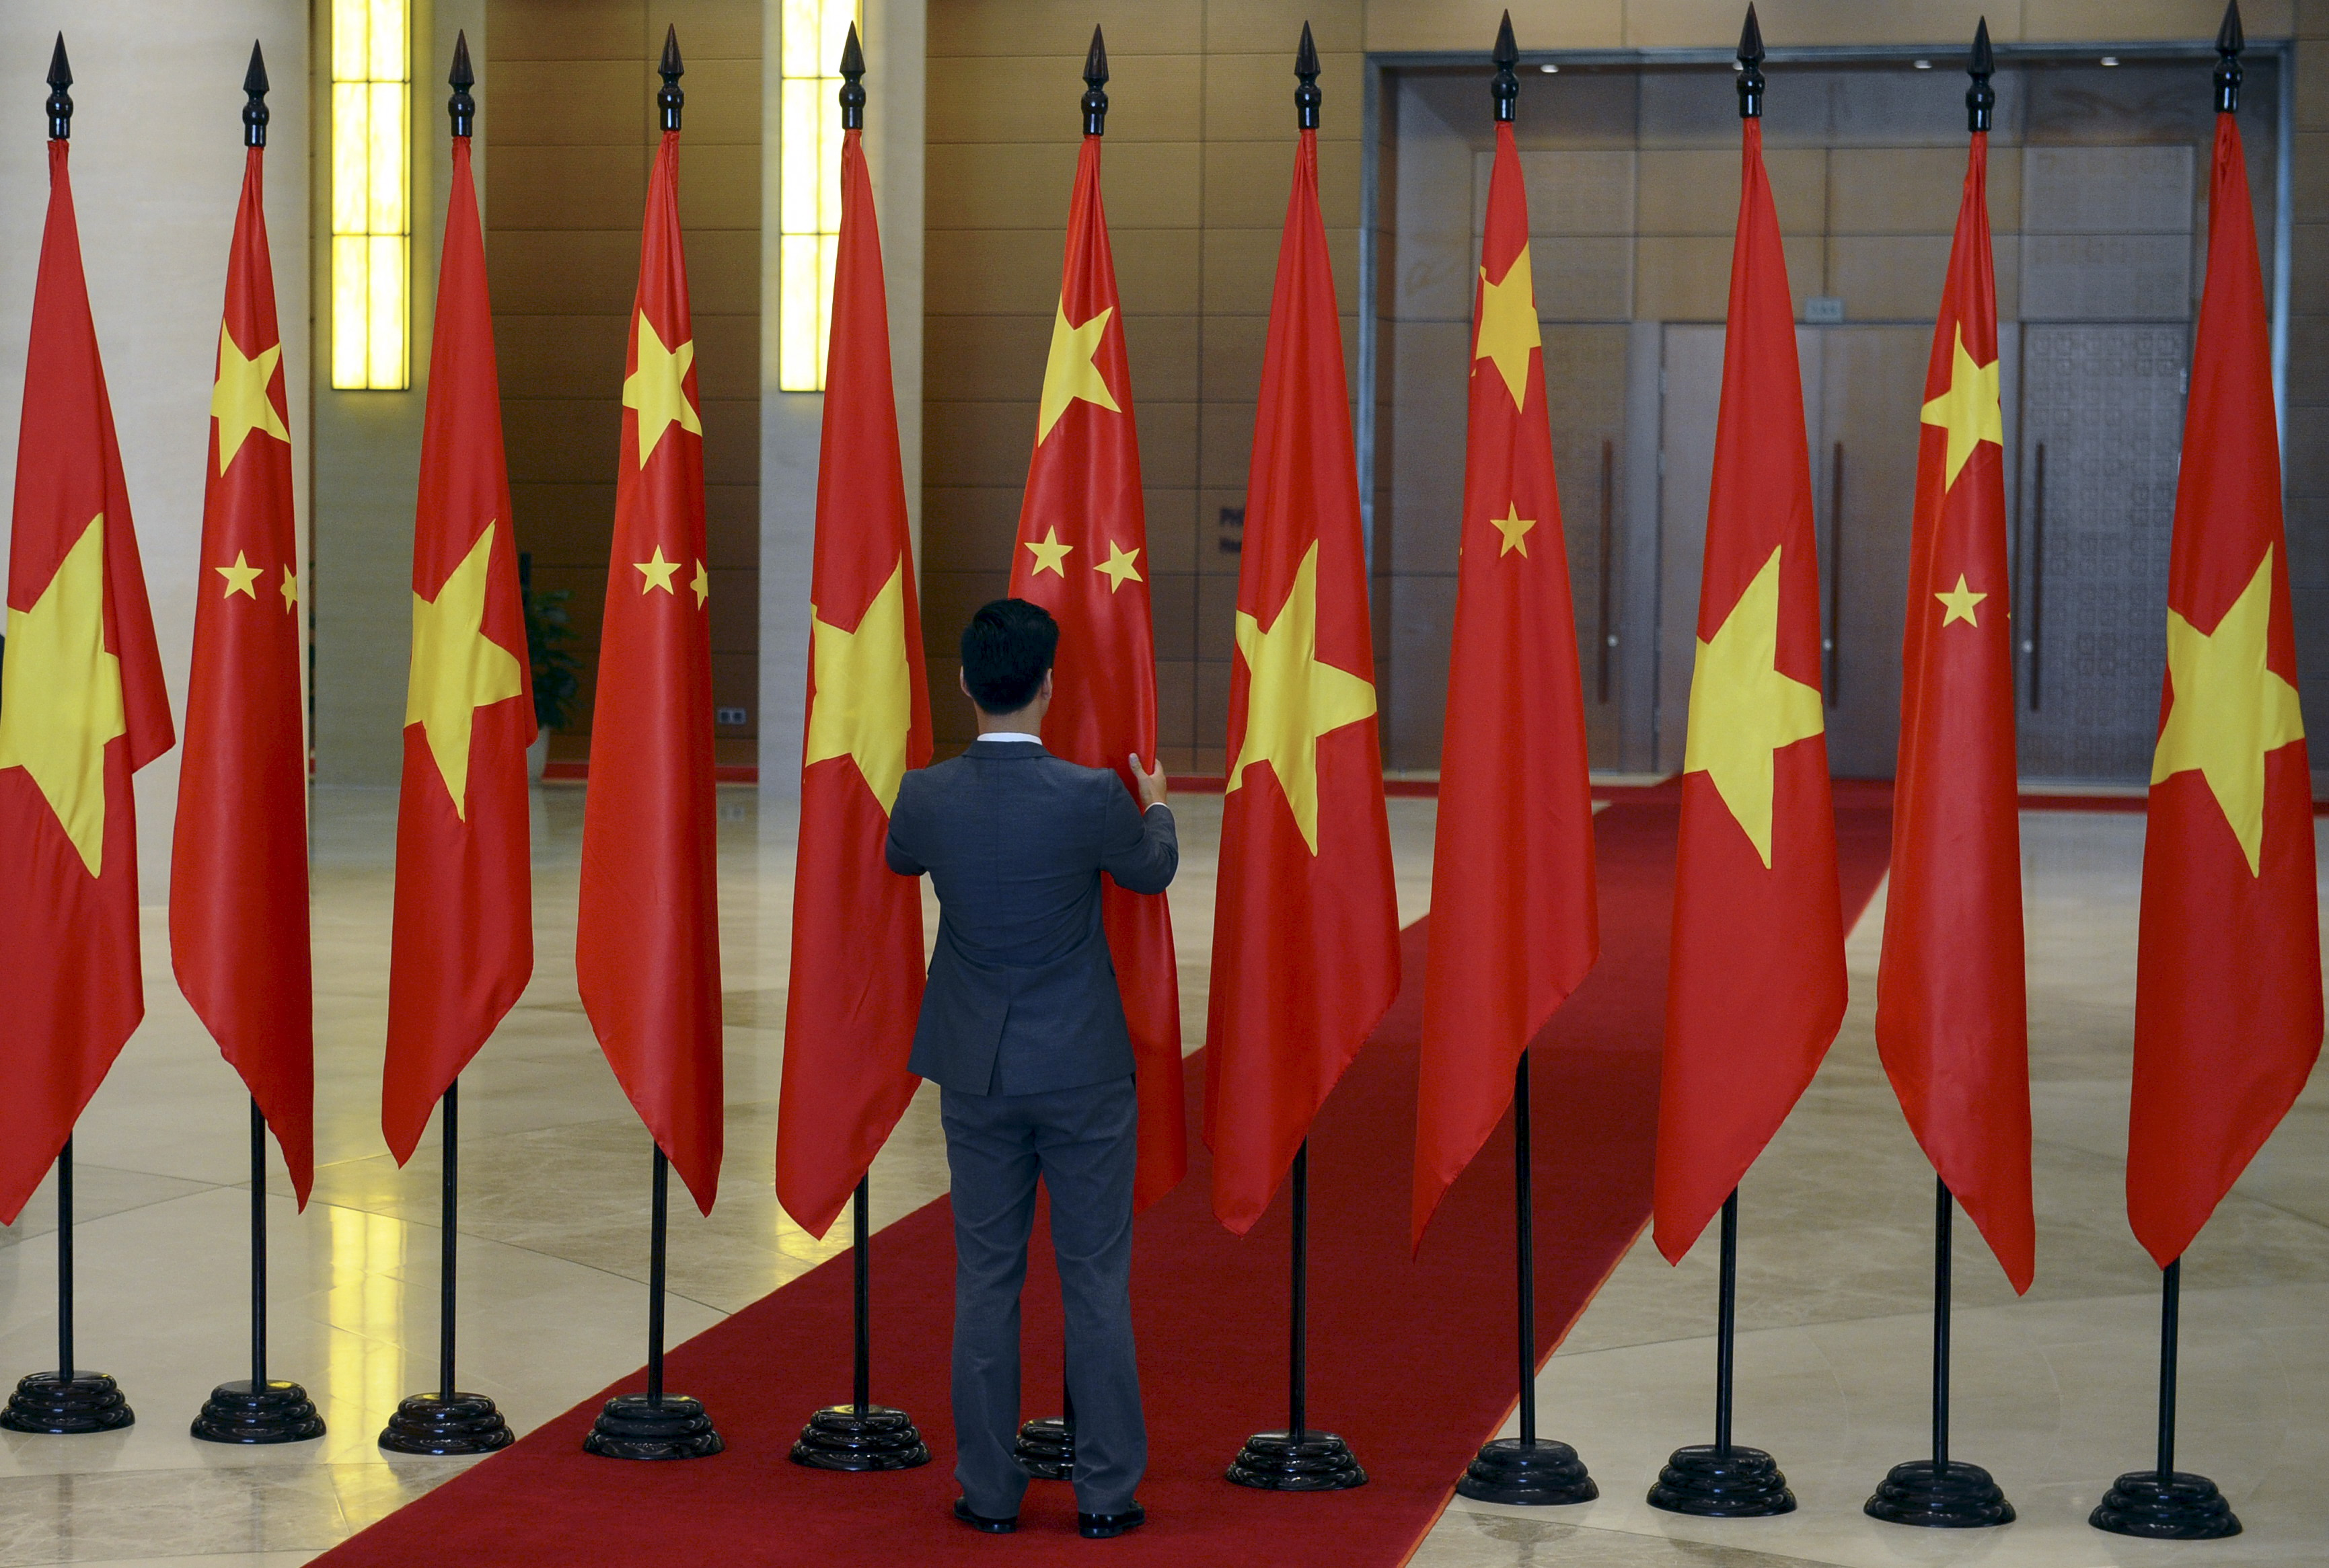 A Vietnamese protocol officer arranges Chinese and Vietnamese flags before the arrival of Chinese President Xi Jinping at the Parliament House in Hanoi, Vietnam November 6, 2015. REUTERS/Hoang Dinh Nam/Pool/Files